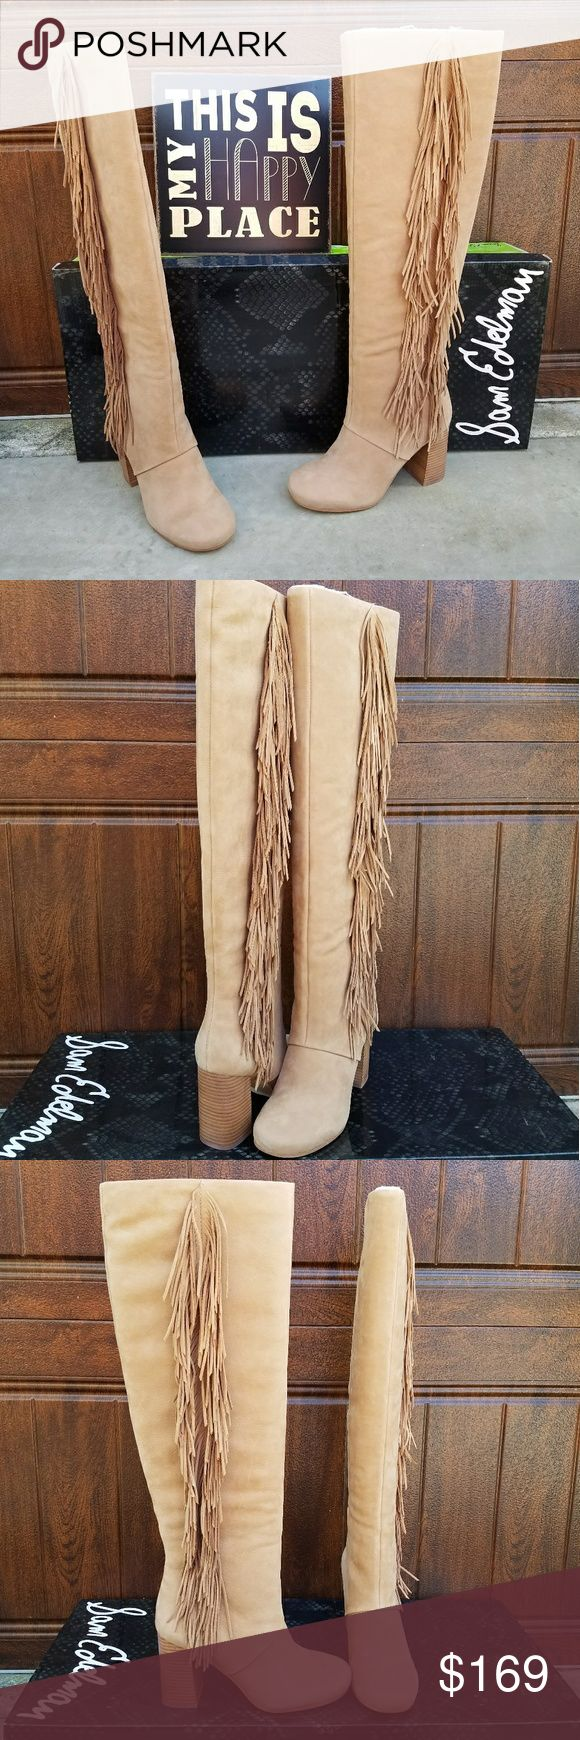 """Gorgeous Tall Fringe Sam Edelman Boots A stacked heel and dramatic fringe trim heighten the rustic, Western vibe of a look-defining over-the-knee boot.  - Almond toe - Side fringe trim - Pull-on - Stacked chunky heel - Approx. 19"""" shaft height, 14.5"""" opening circumference - Approx. 3 1/4"""" heel Sam Edelman Shoes Over the Knee Boots"""